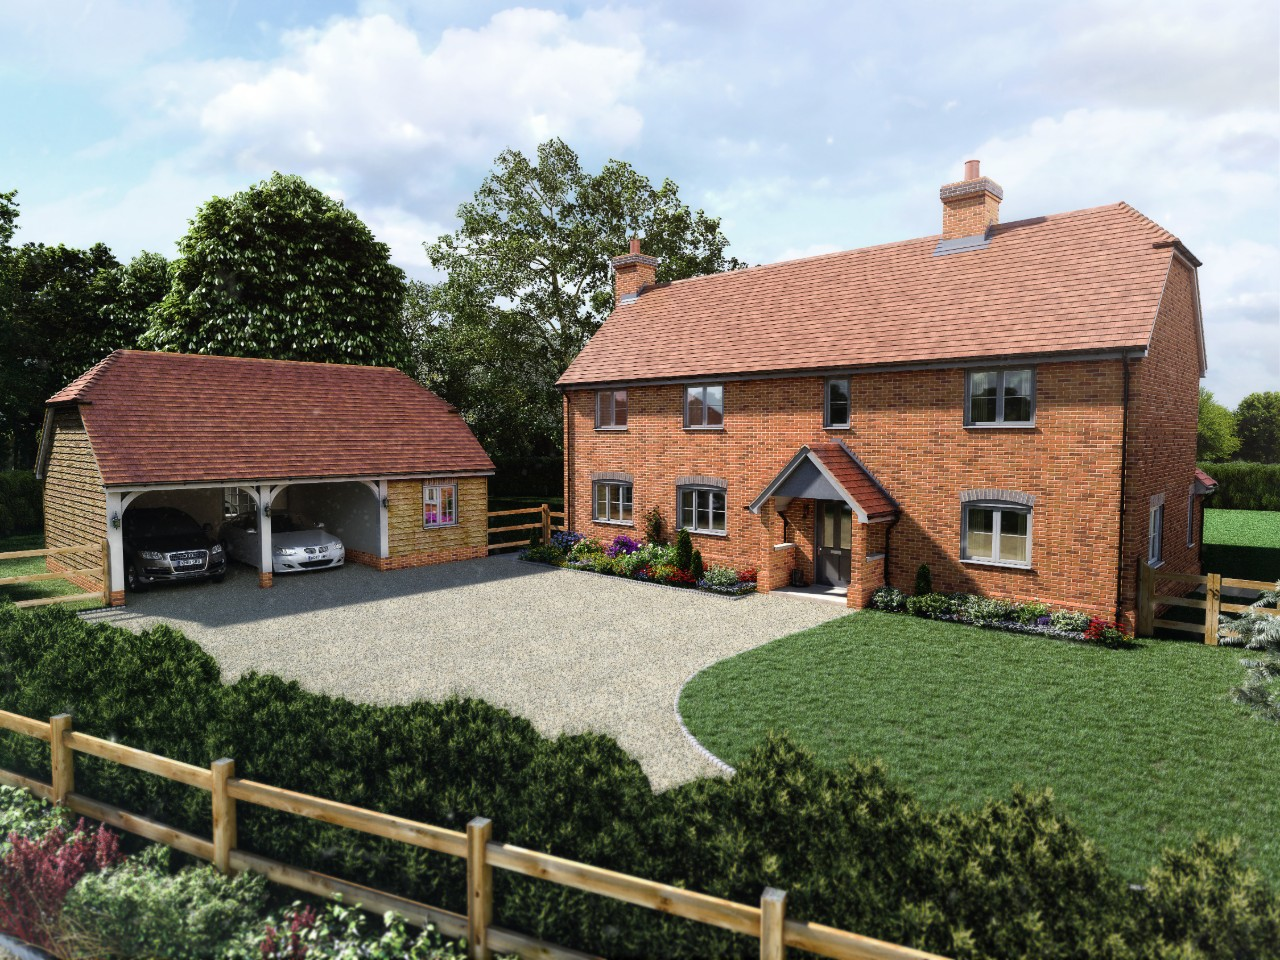 Family homes in a picturesque village of Herriard